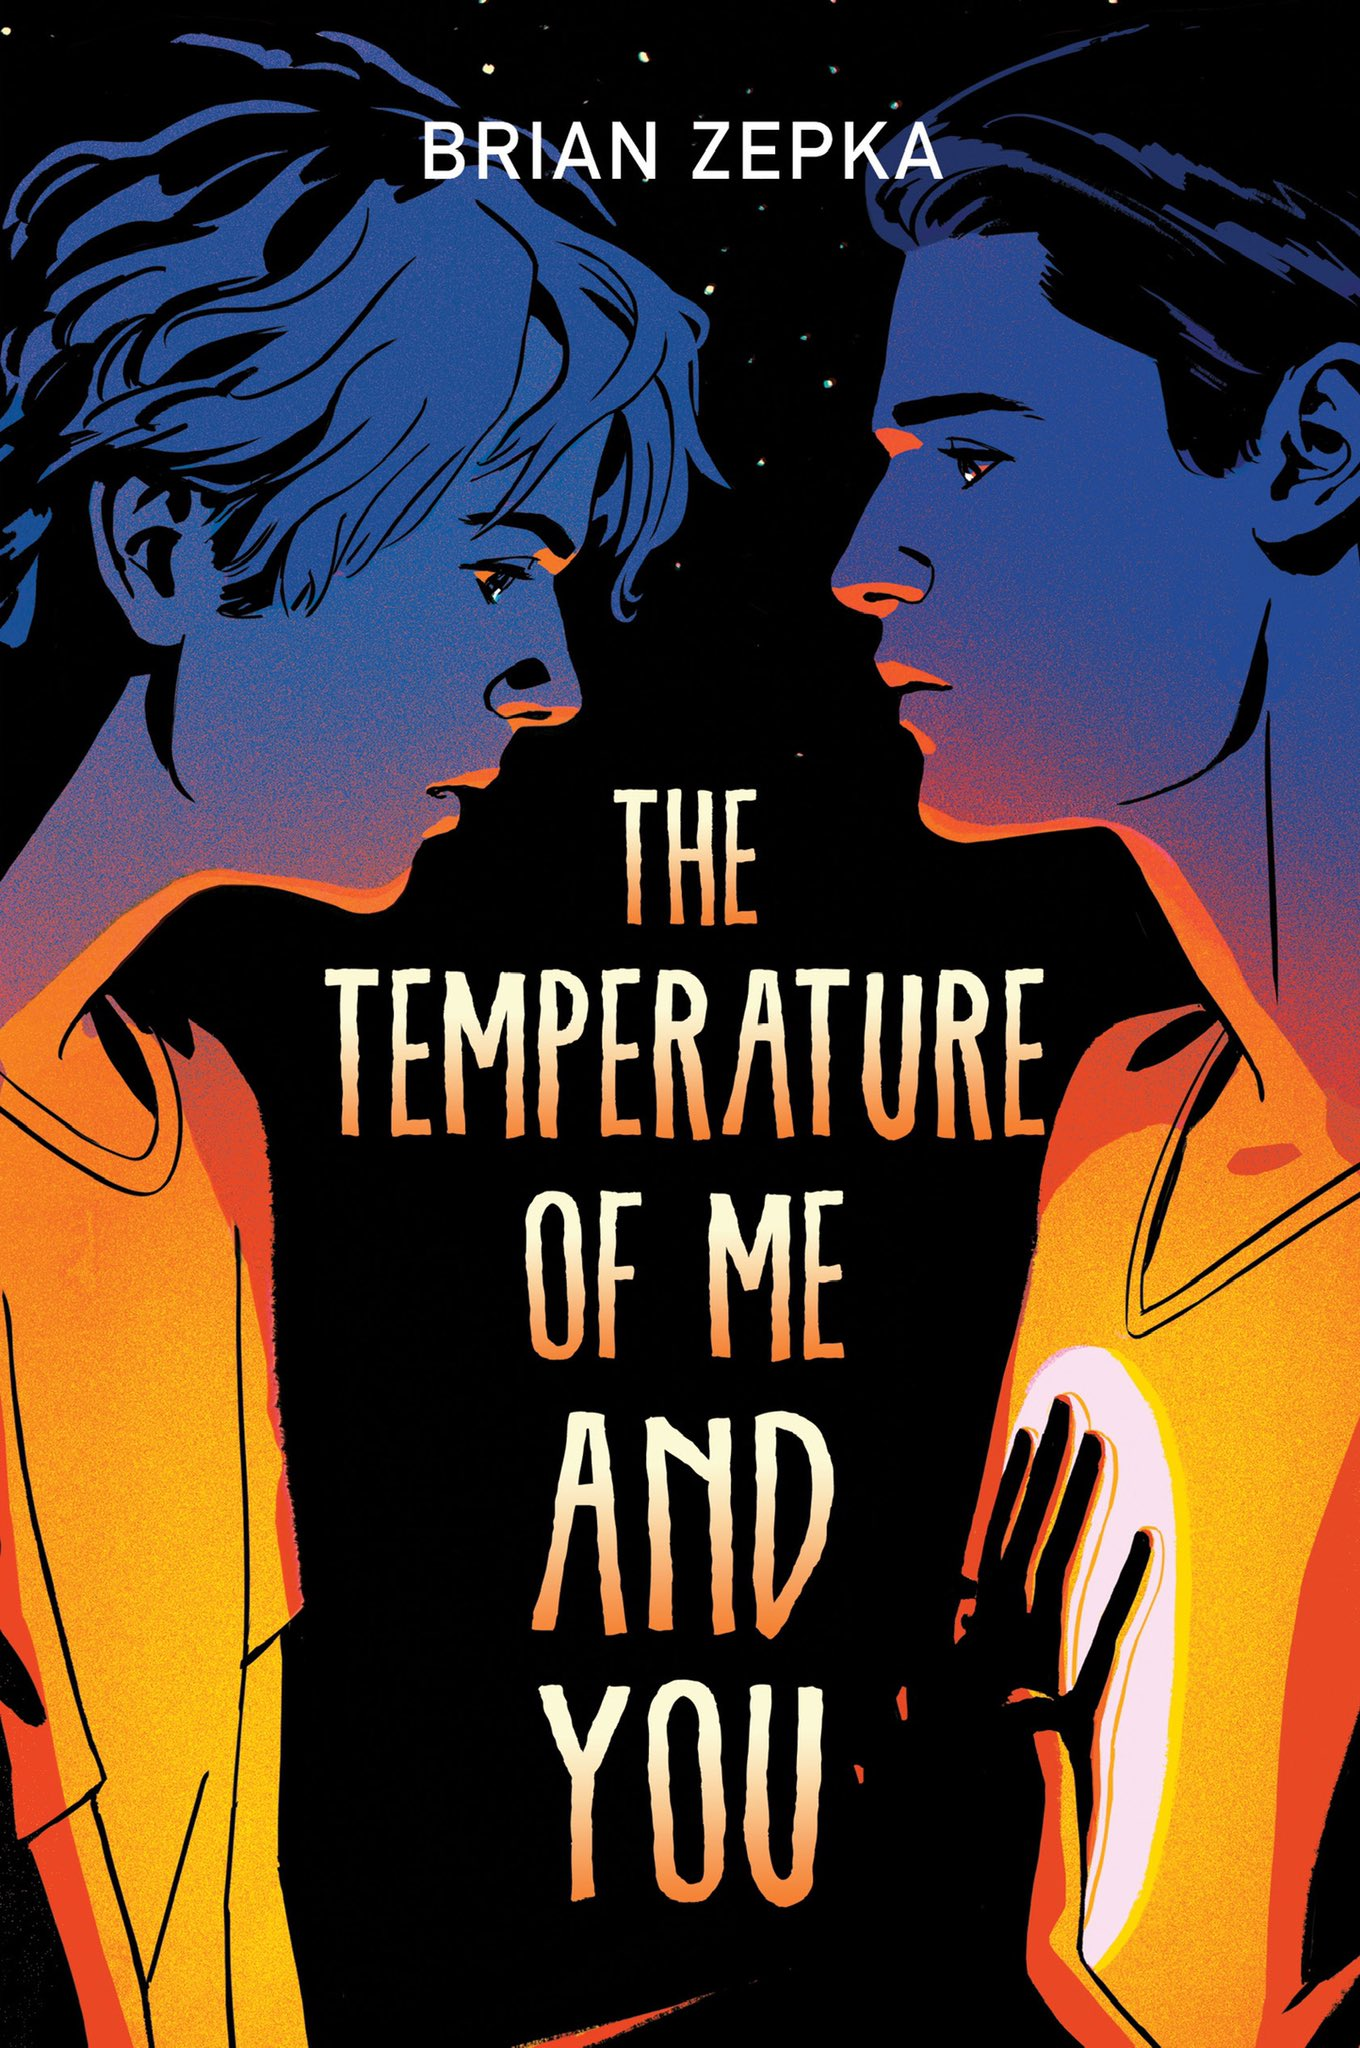 The Temperature of Me and You by Brian Zepka